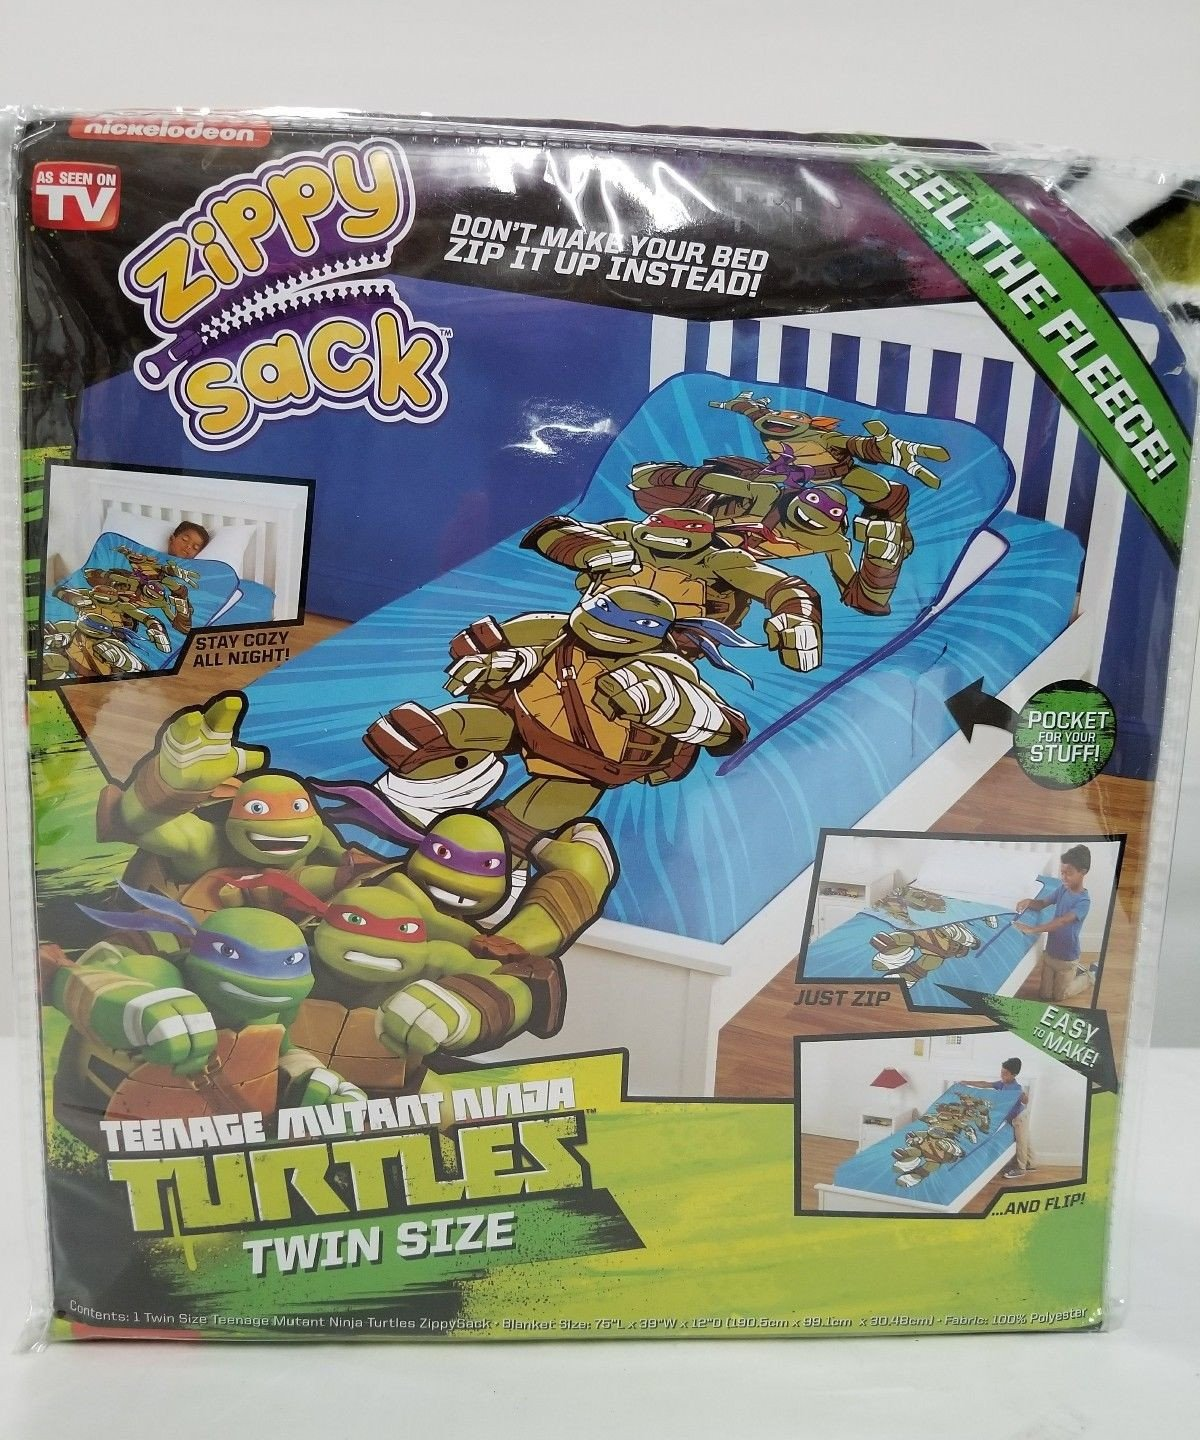 Teenage Mutant Ninja Turtles Bedroom Set Best Of Zippysack Teenage Mutant Ninja Turtles Twin Size Zippy Sack